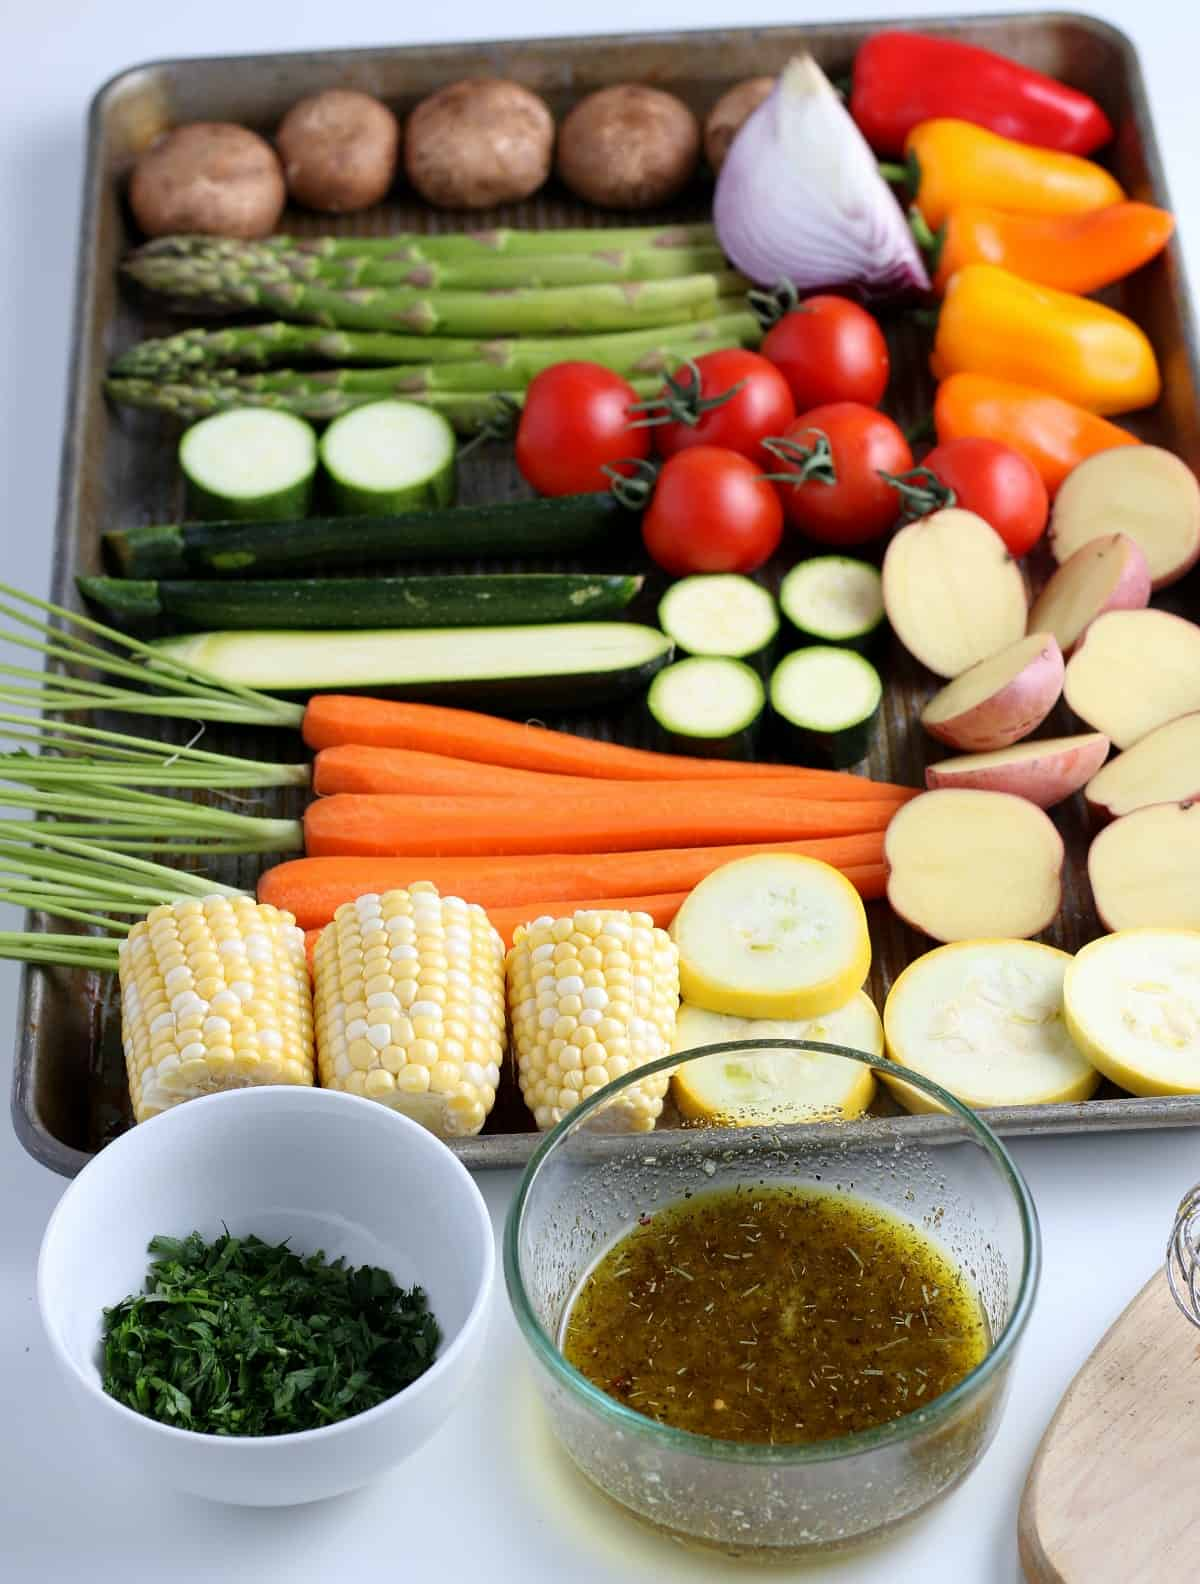 Slanted view of prepared vegetables laid out on a sheet pan with marinade and fresh parsley in front.